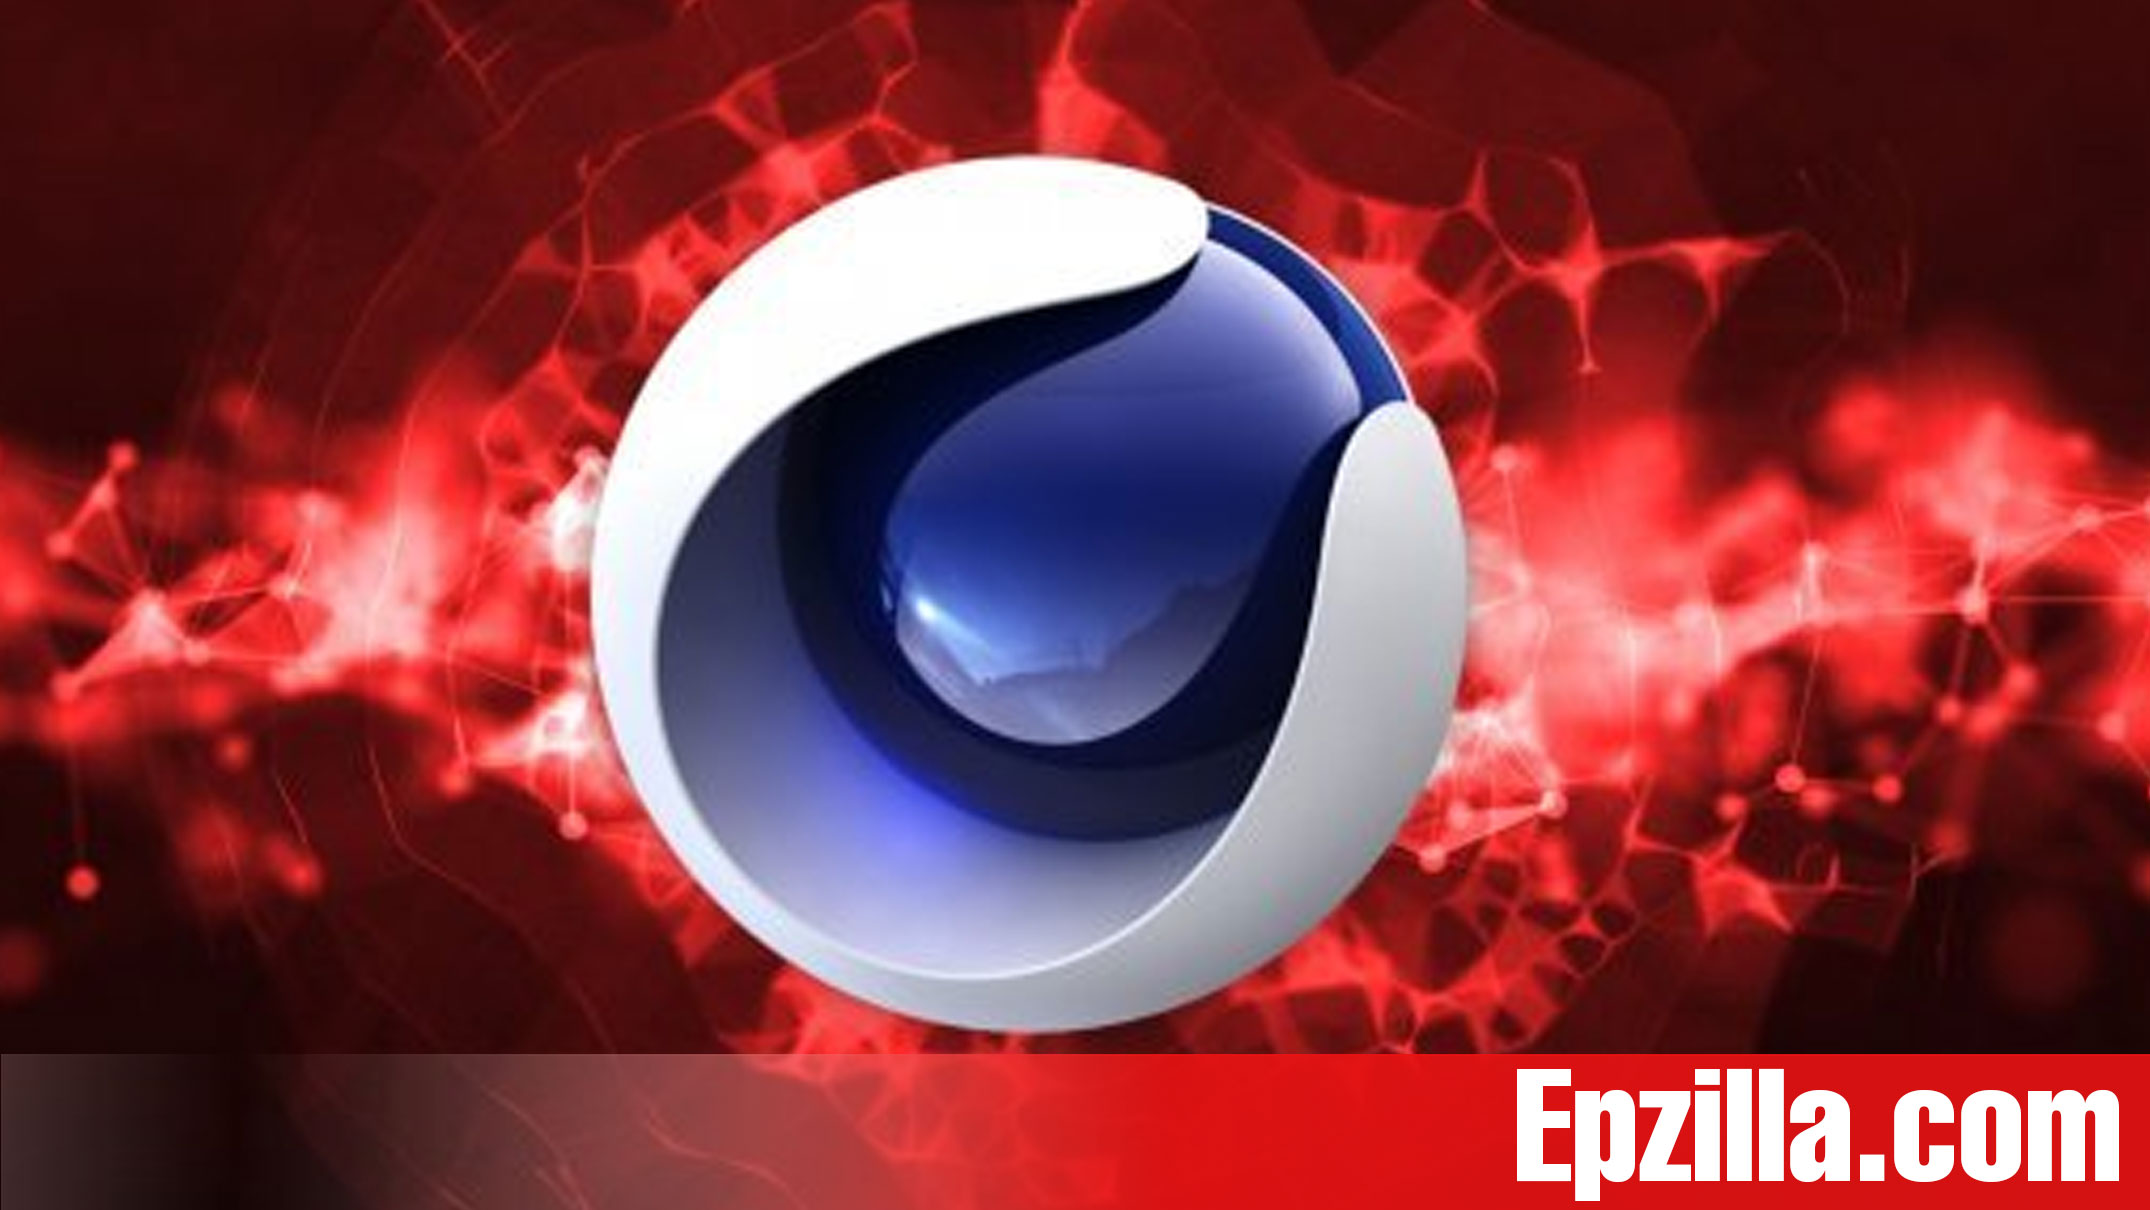 Udemy-Cinema-4D-Complete-Vol.-2.-All-about-Modeling-Full-Course-Free-Download-Epzilla.com